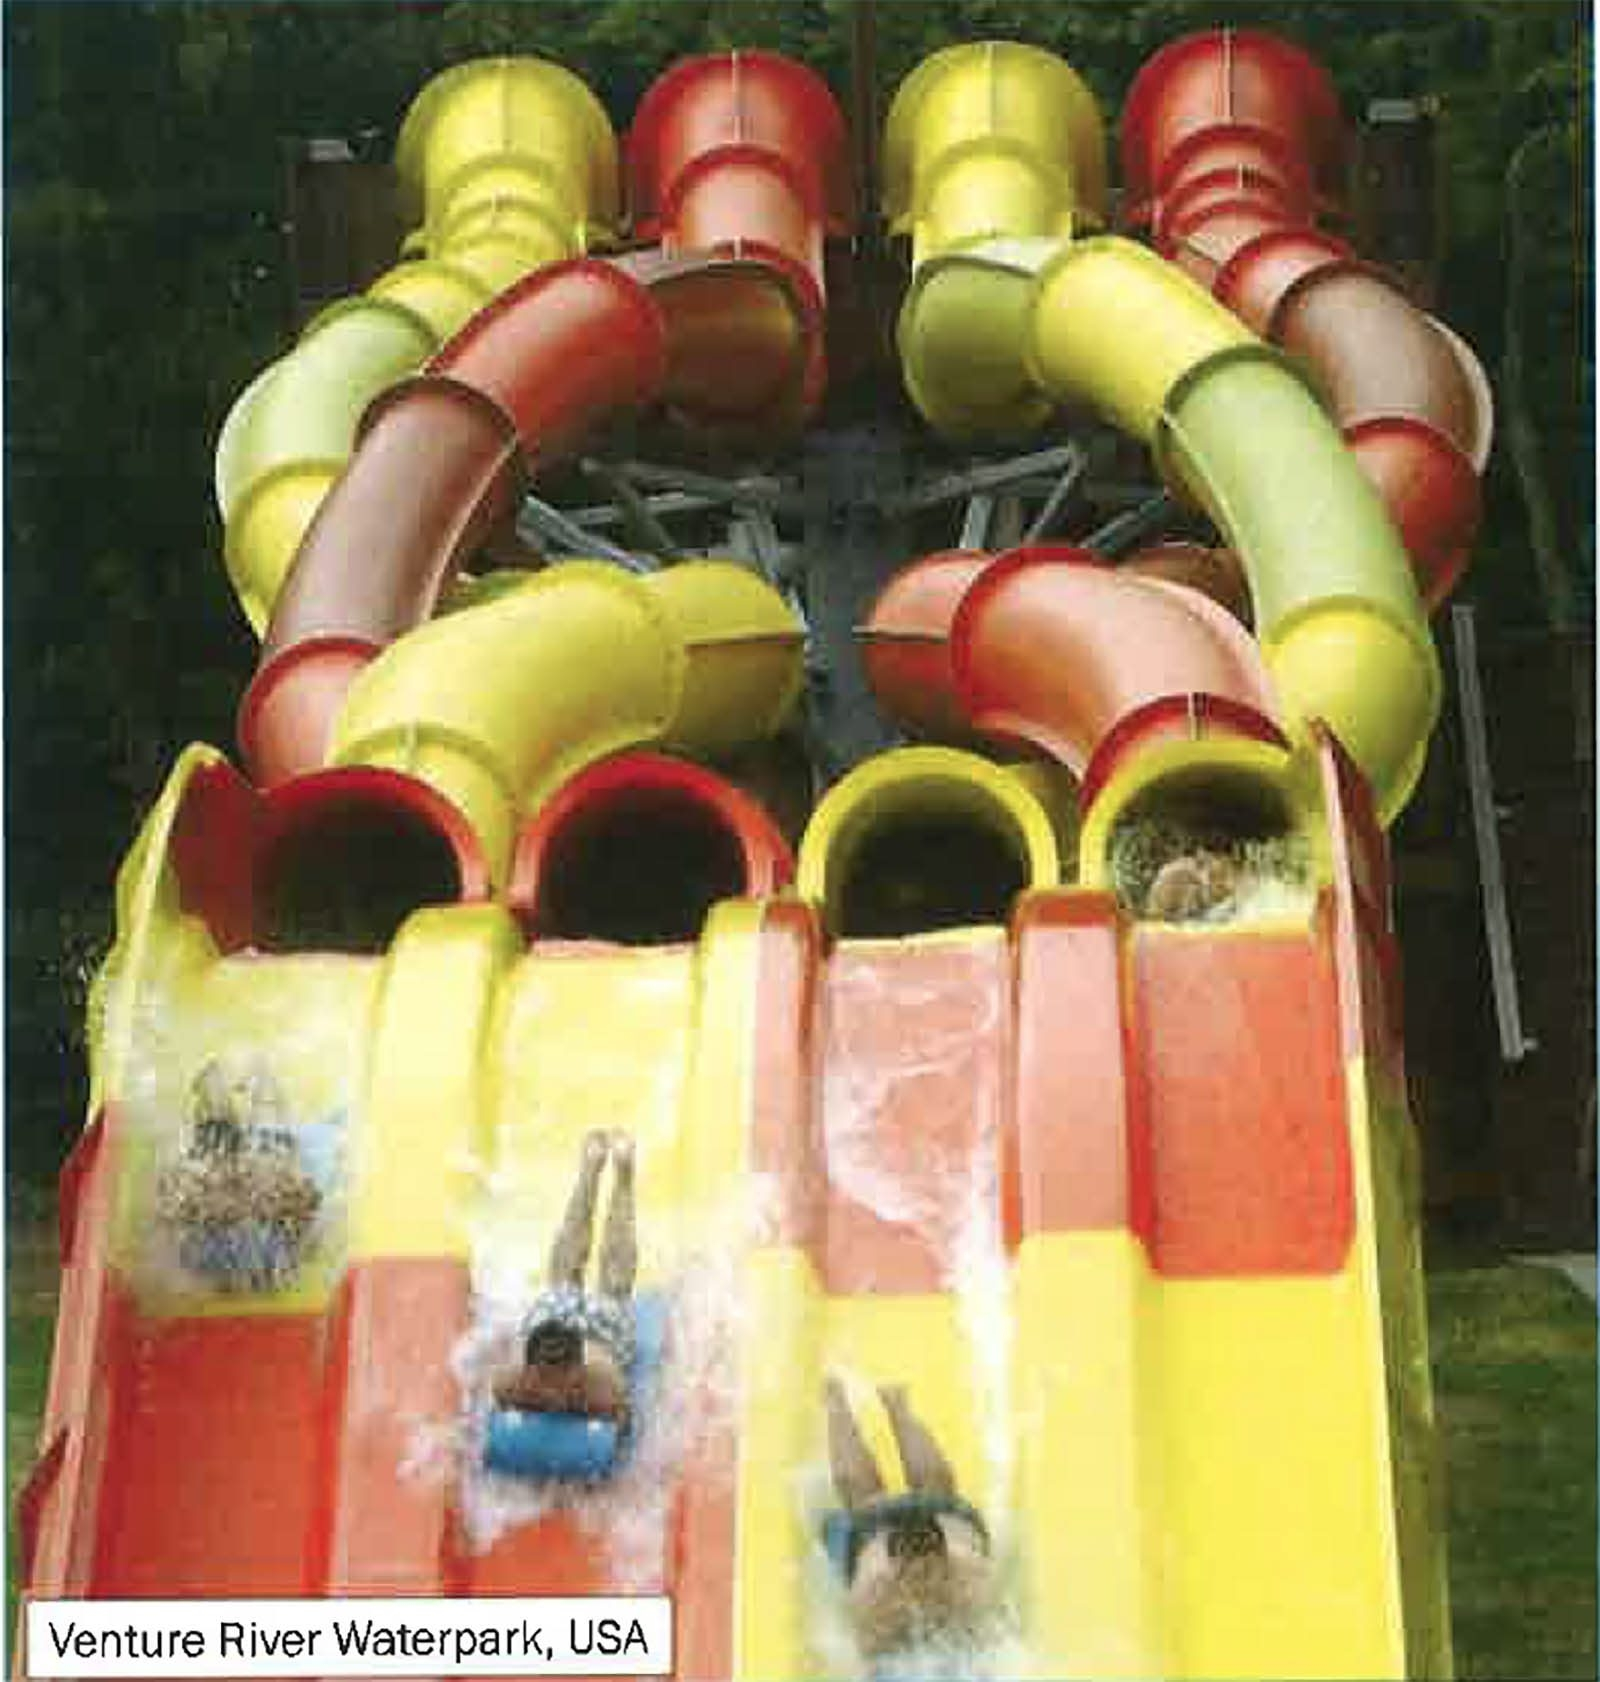 A water slide like this one in Venture River Waterpark in Eddyville, Ky., is being planed for Darien Lake.